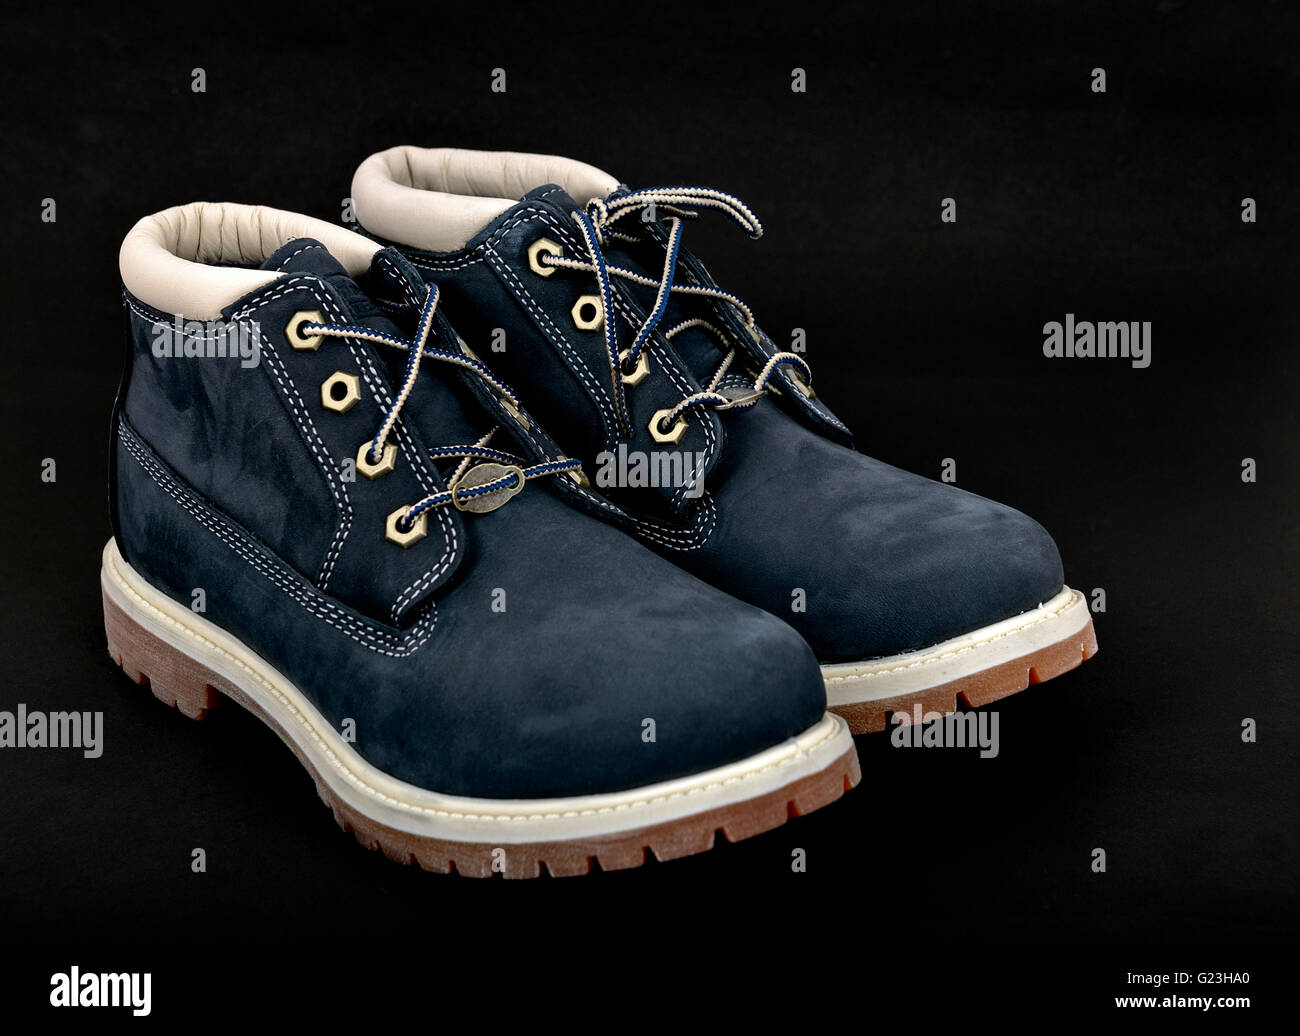 Navy lady's boots with shoelace and sole on black background. - Stock Image